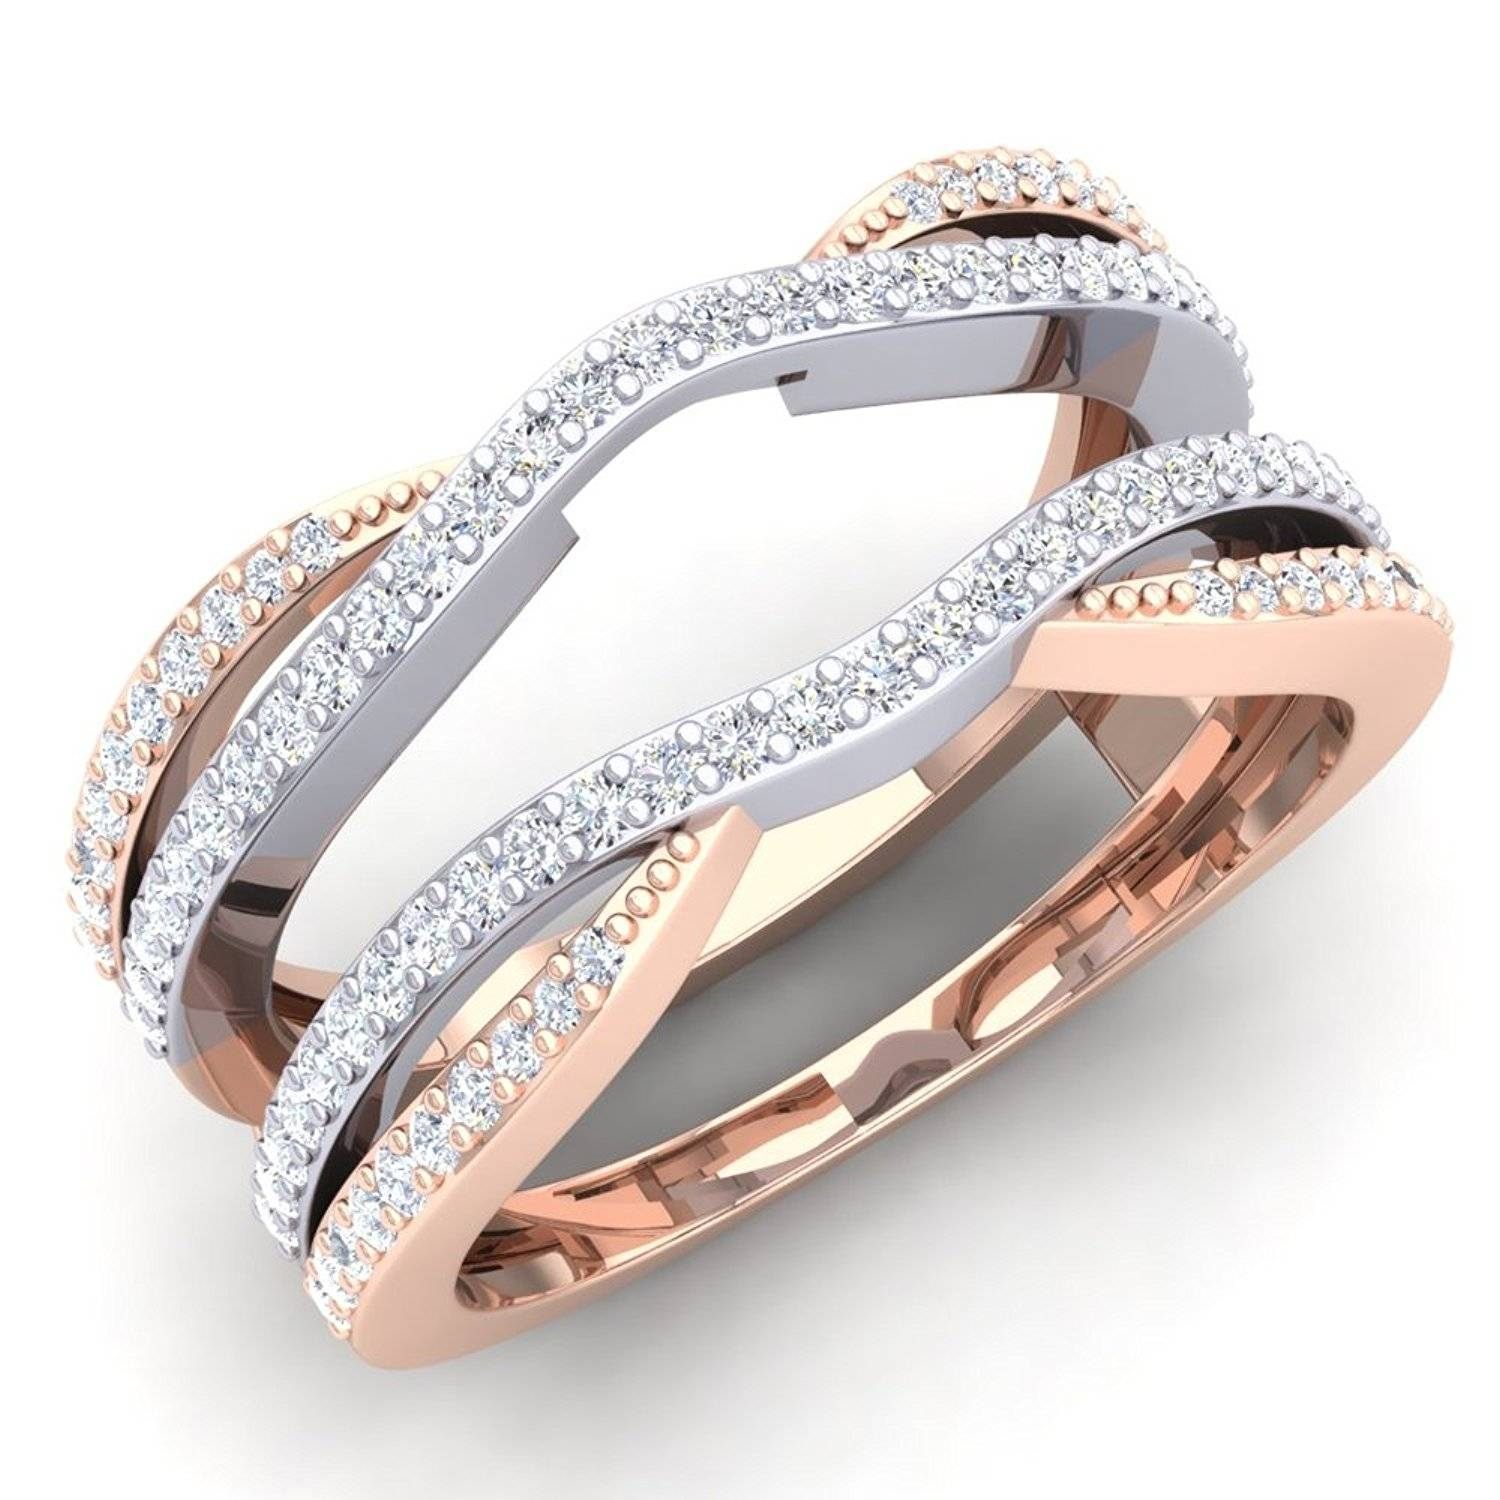 Ring Unique Wedding Rings Without Diamonds Morganite And Diamond Throughout Wedding Rings Without Diamonds (Gallery 14 of 15)